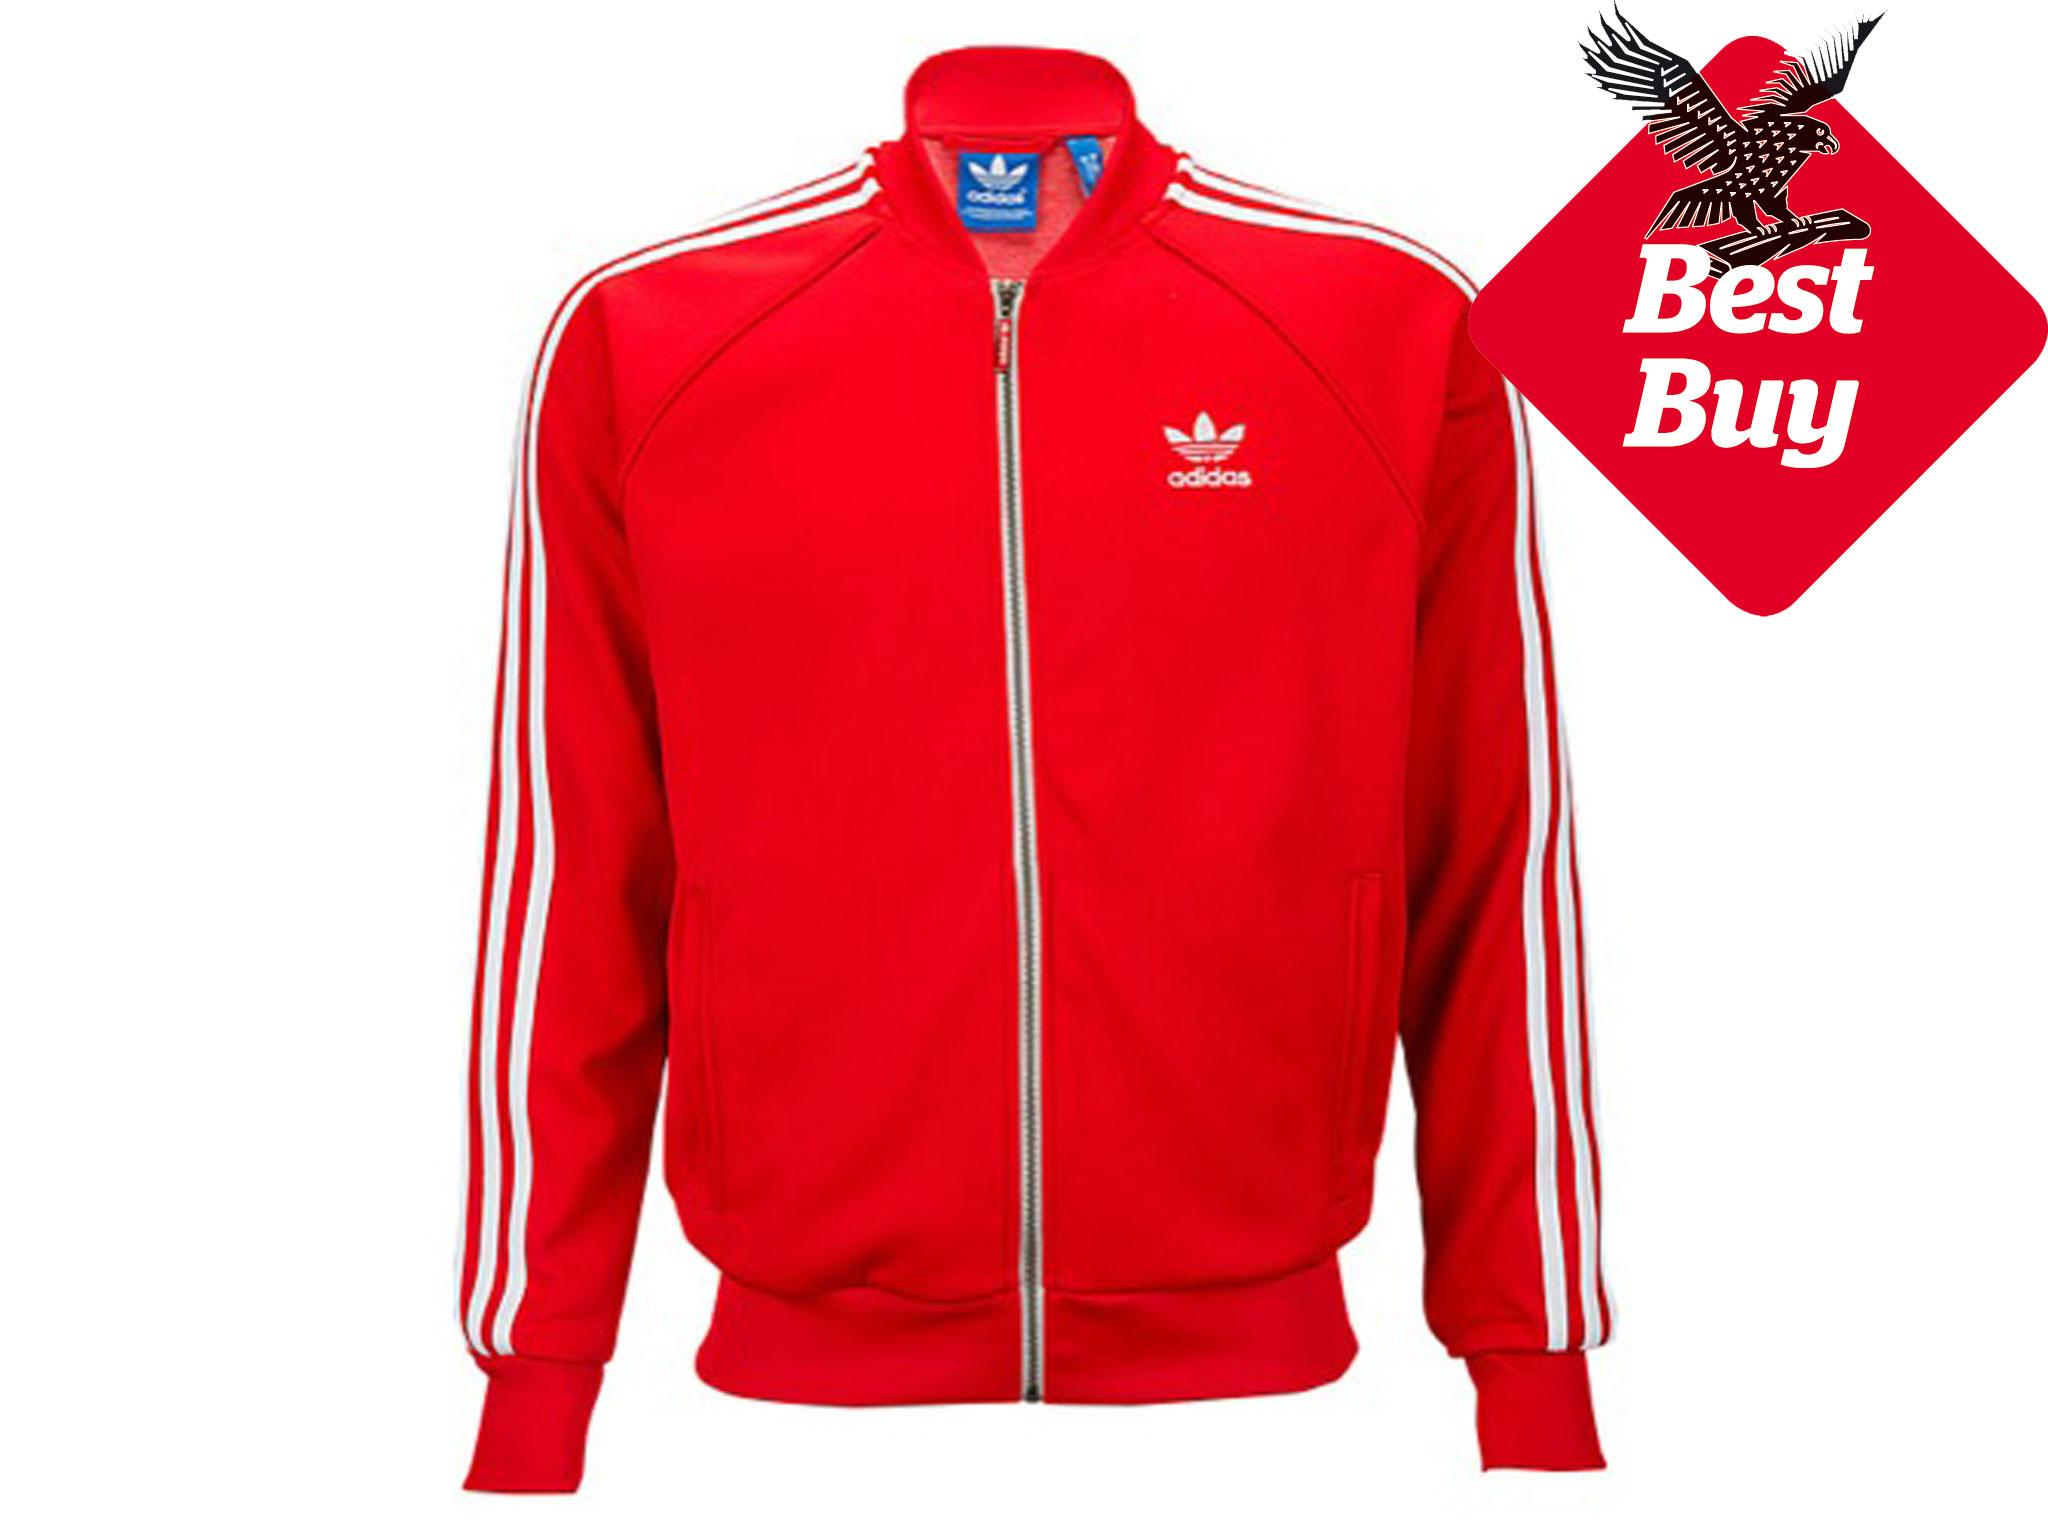 201086784 10 best tracksuits | The Independent